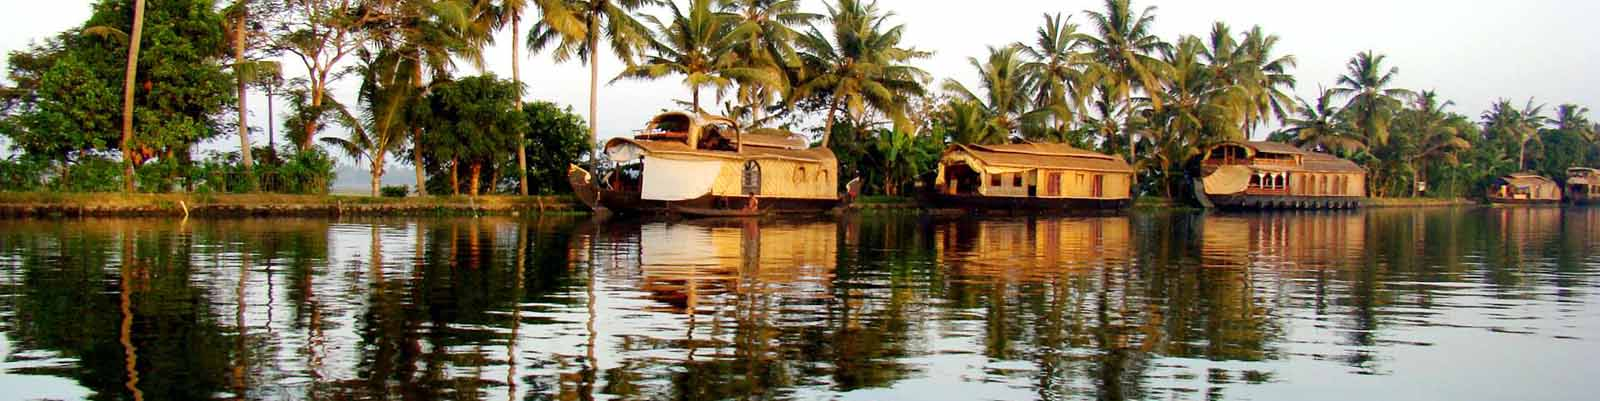 kerala tour and honeymoon packages from baroda